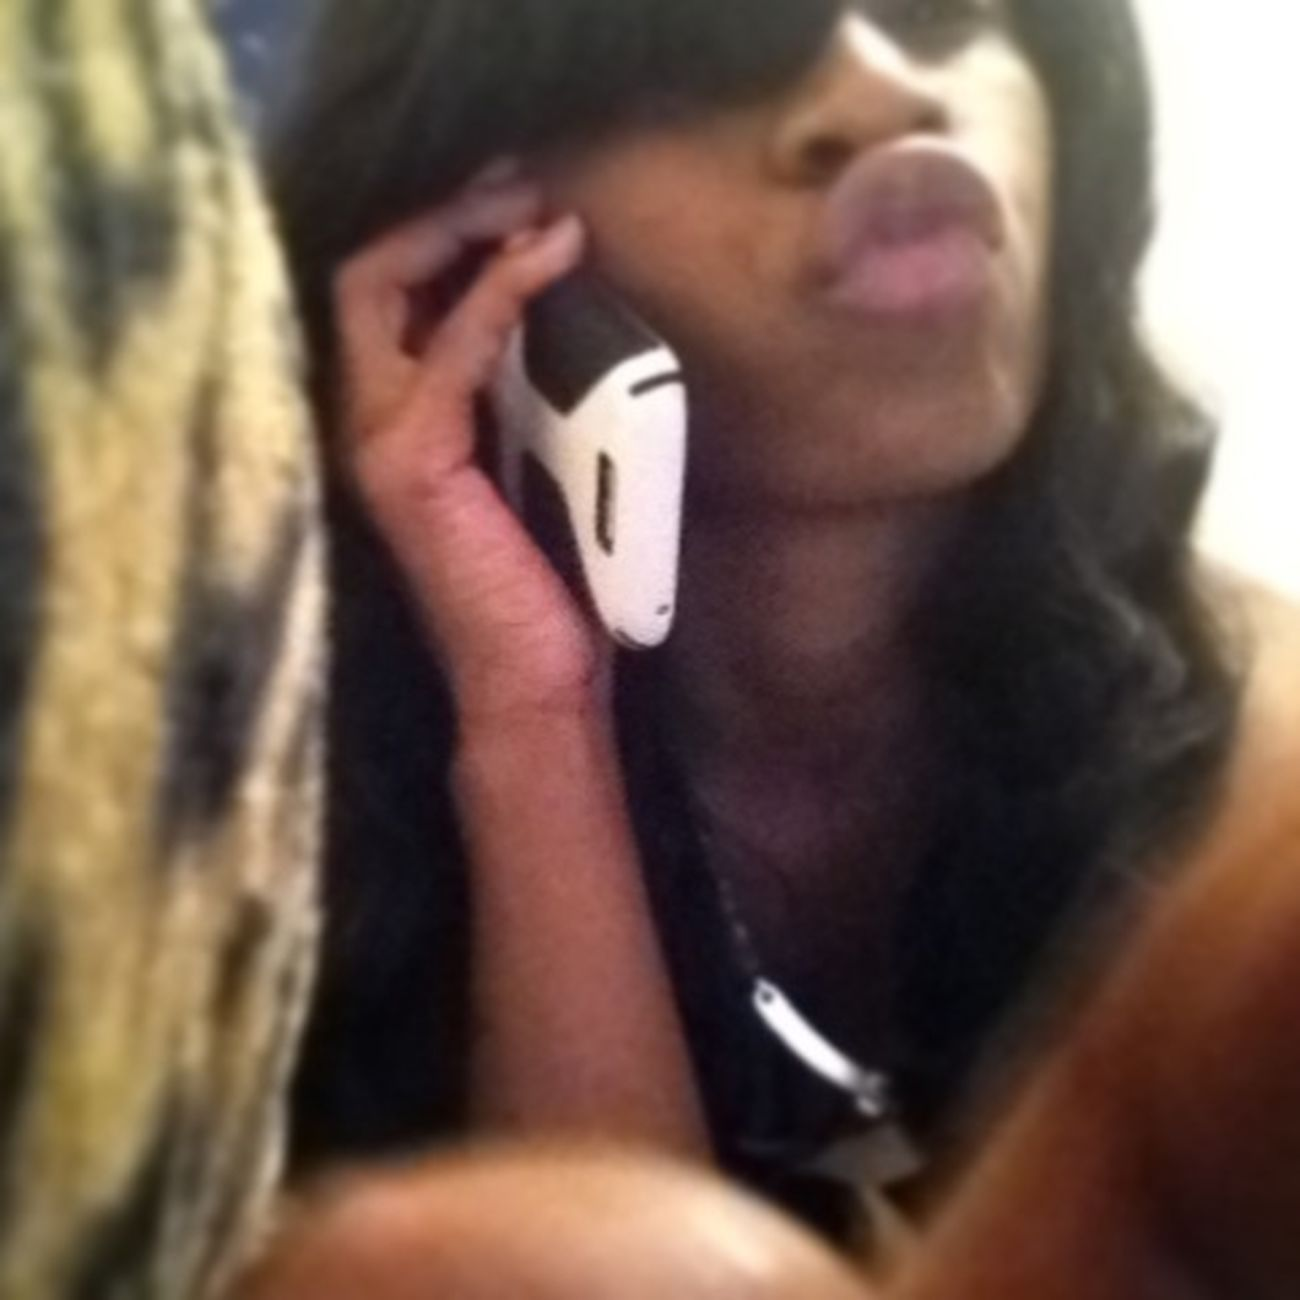 IF We Not In Each Other Face We On The Phone 24/24 !